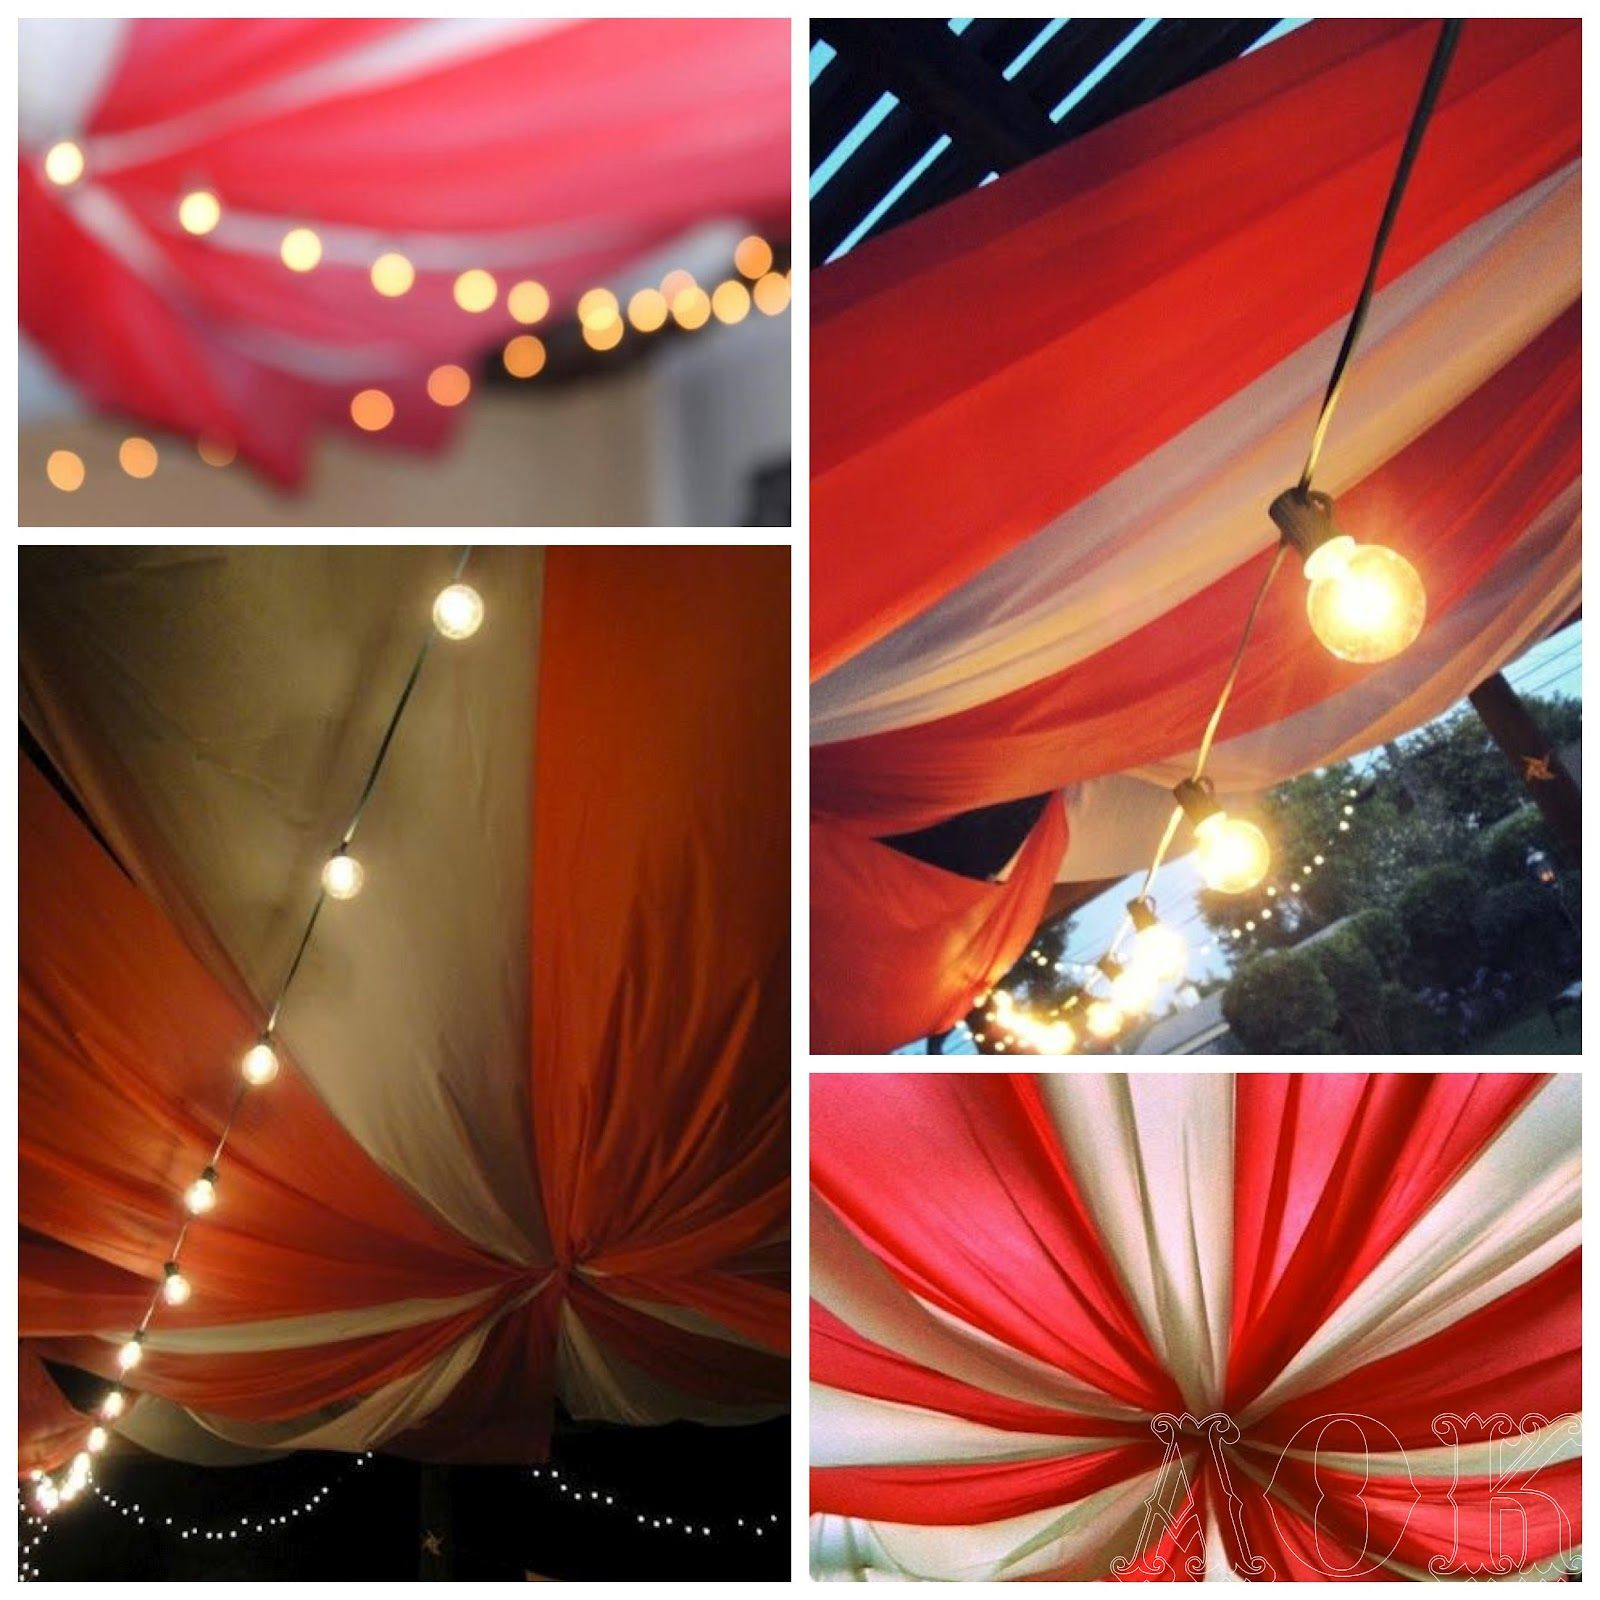 Diy circus tent from plastic table cloths, going to do this for under the porch but with yellow, red, and blue it is going to look so pretty.